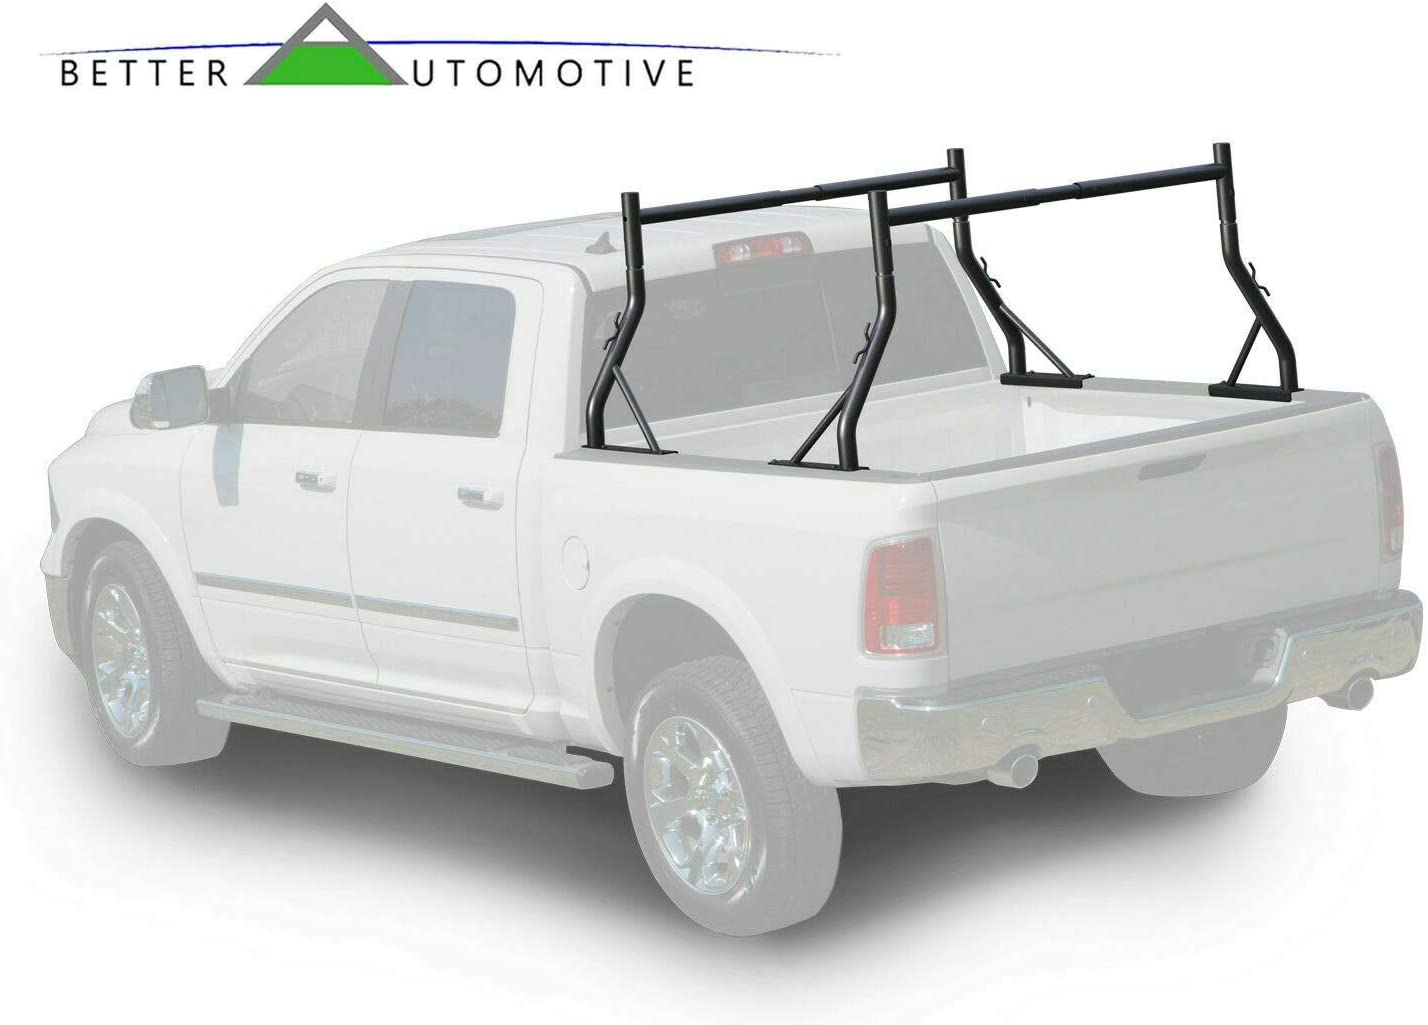 BETTER AUTOMOTIVE Adjustable Truck Bed Ladder Rack 2 Bars Pick up Rack 500 LBS Capacity Utility Contractor Universal Custom Fit Kayak Canoe Boat Ladder Pipes Lumber Cargo Carrier Accessories